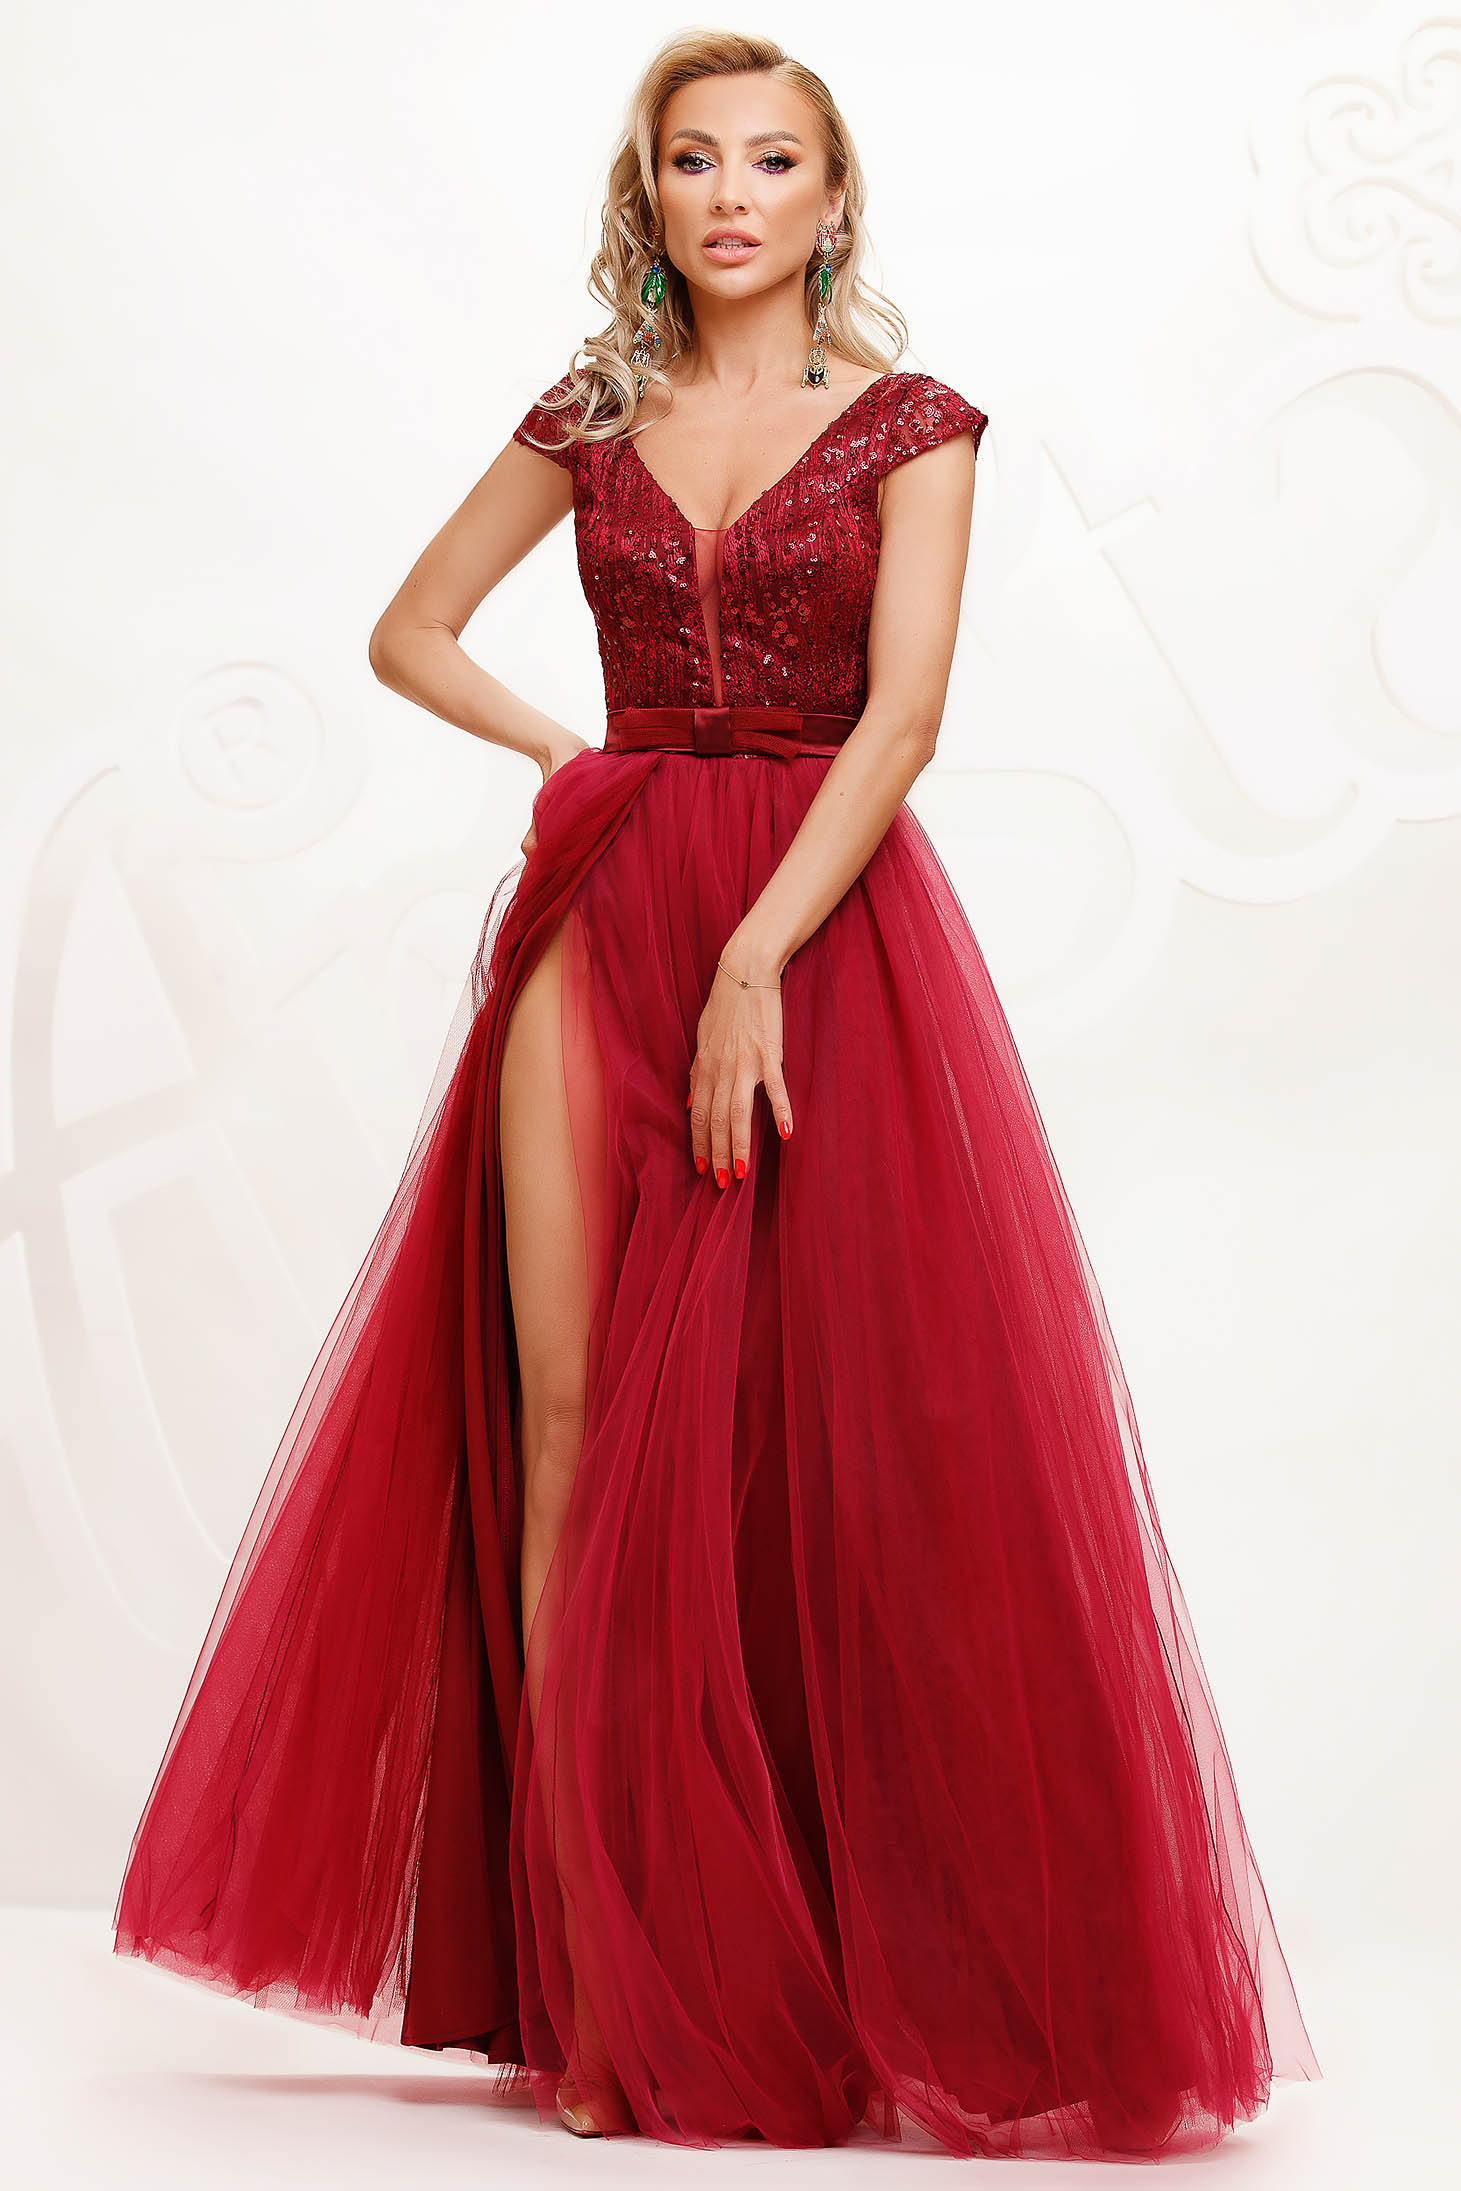 Burgundy dress from tulle cloche occasional slit with sequin embellished details